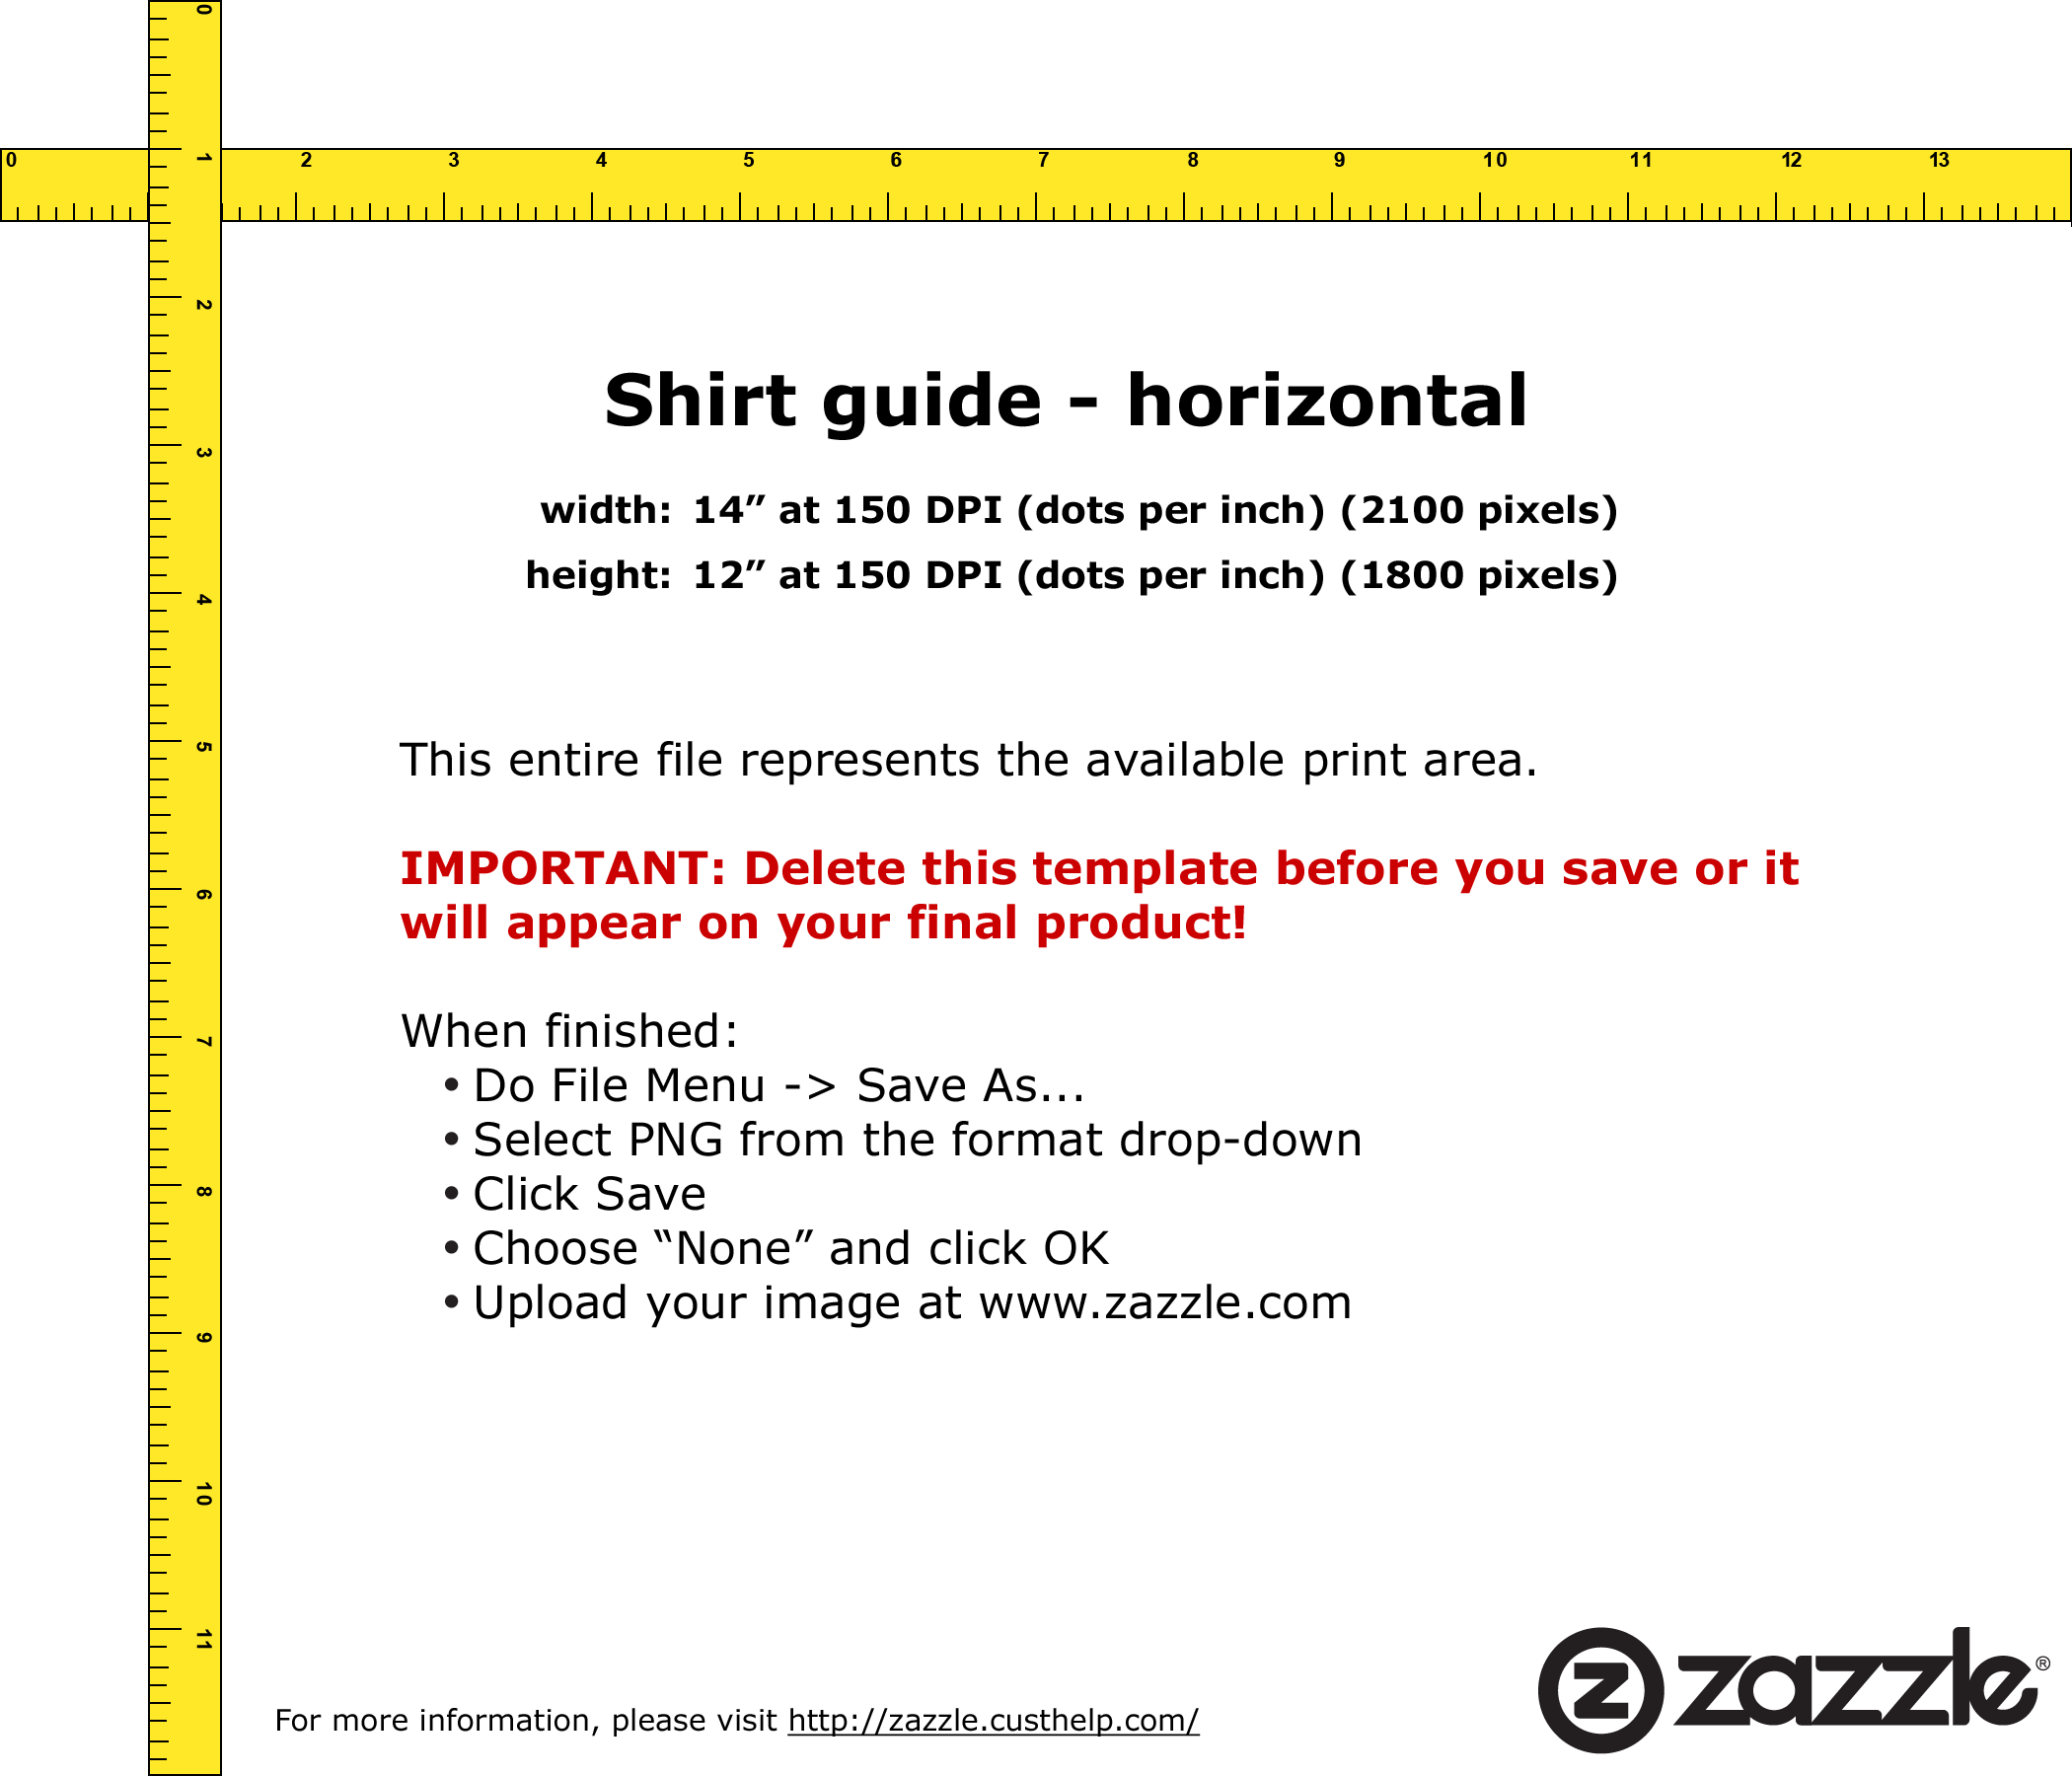 Zazzle t shirt design template - Zazzle T Shirt Design Template Ai Pdf